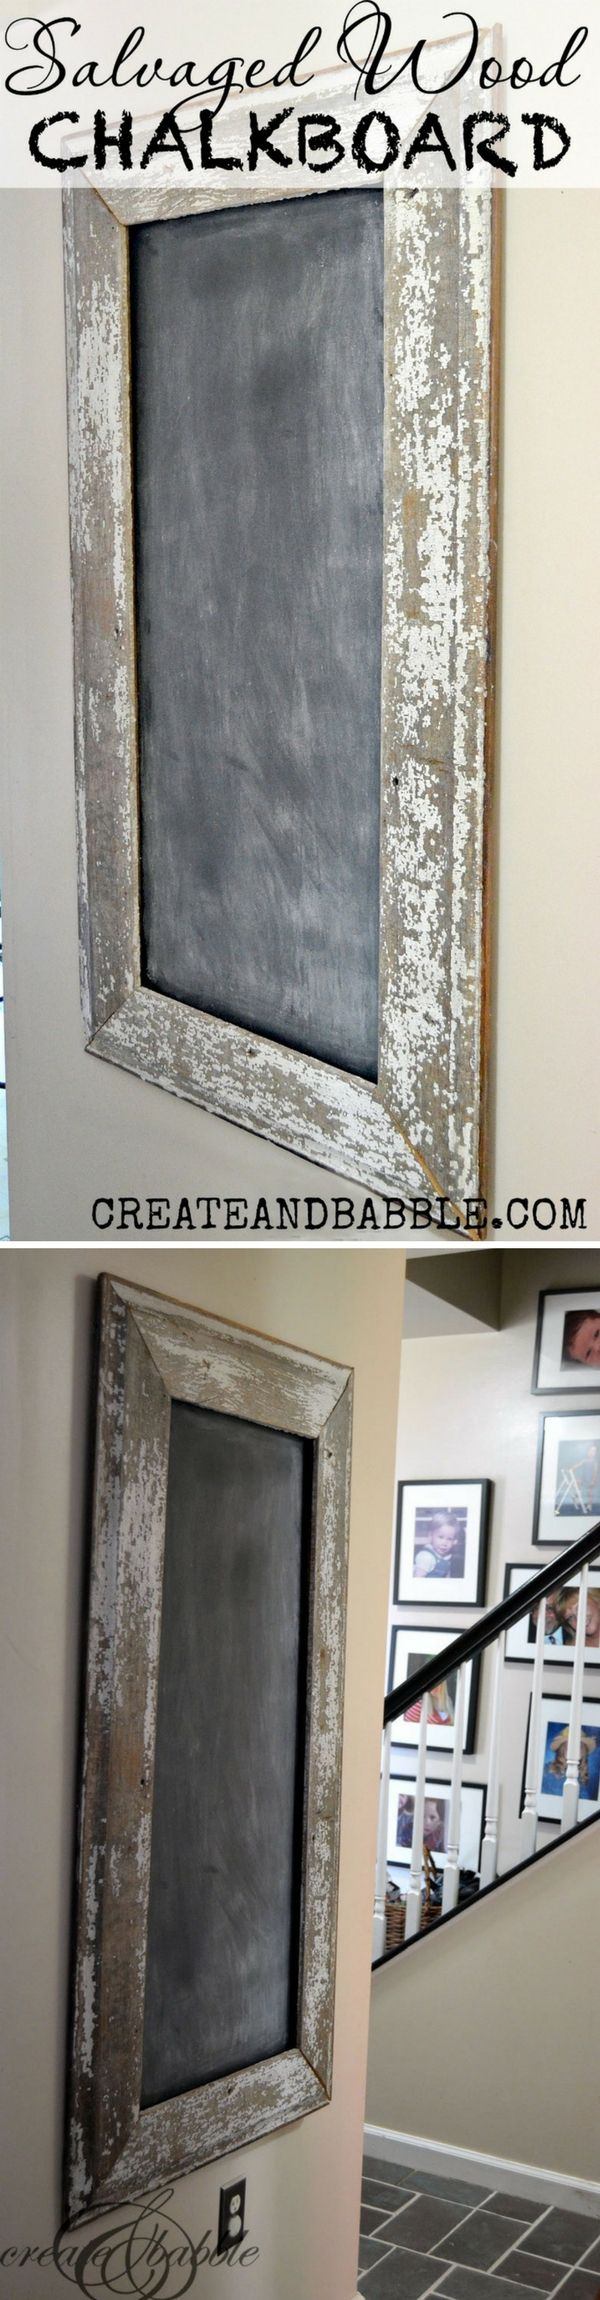 Check out this easy idea on how to make a #DIY salvaged #wood chalkboard #homedecor for #renters #project @istandarddesign